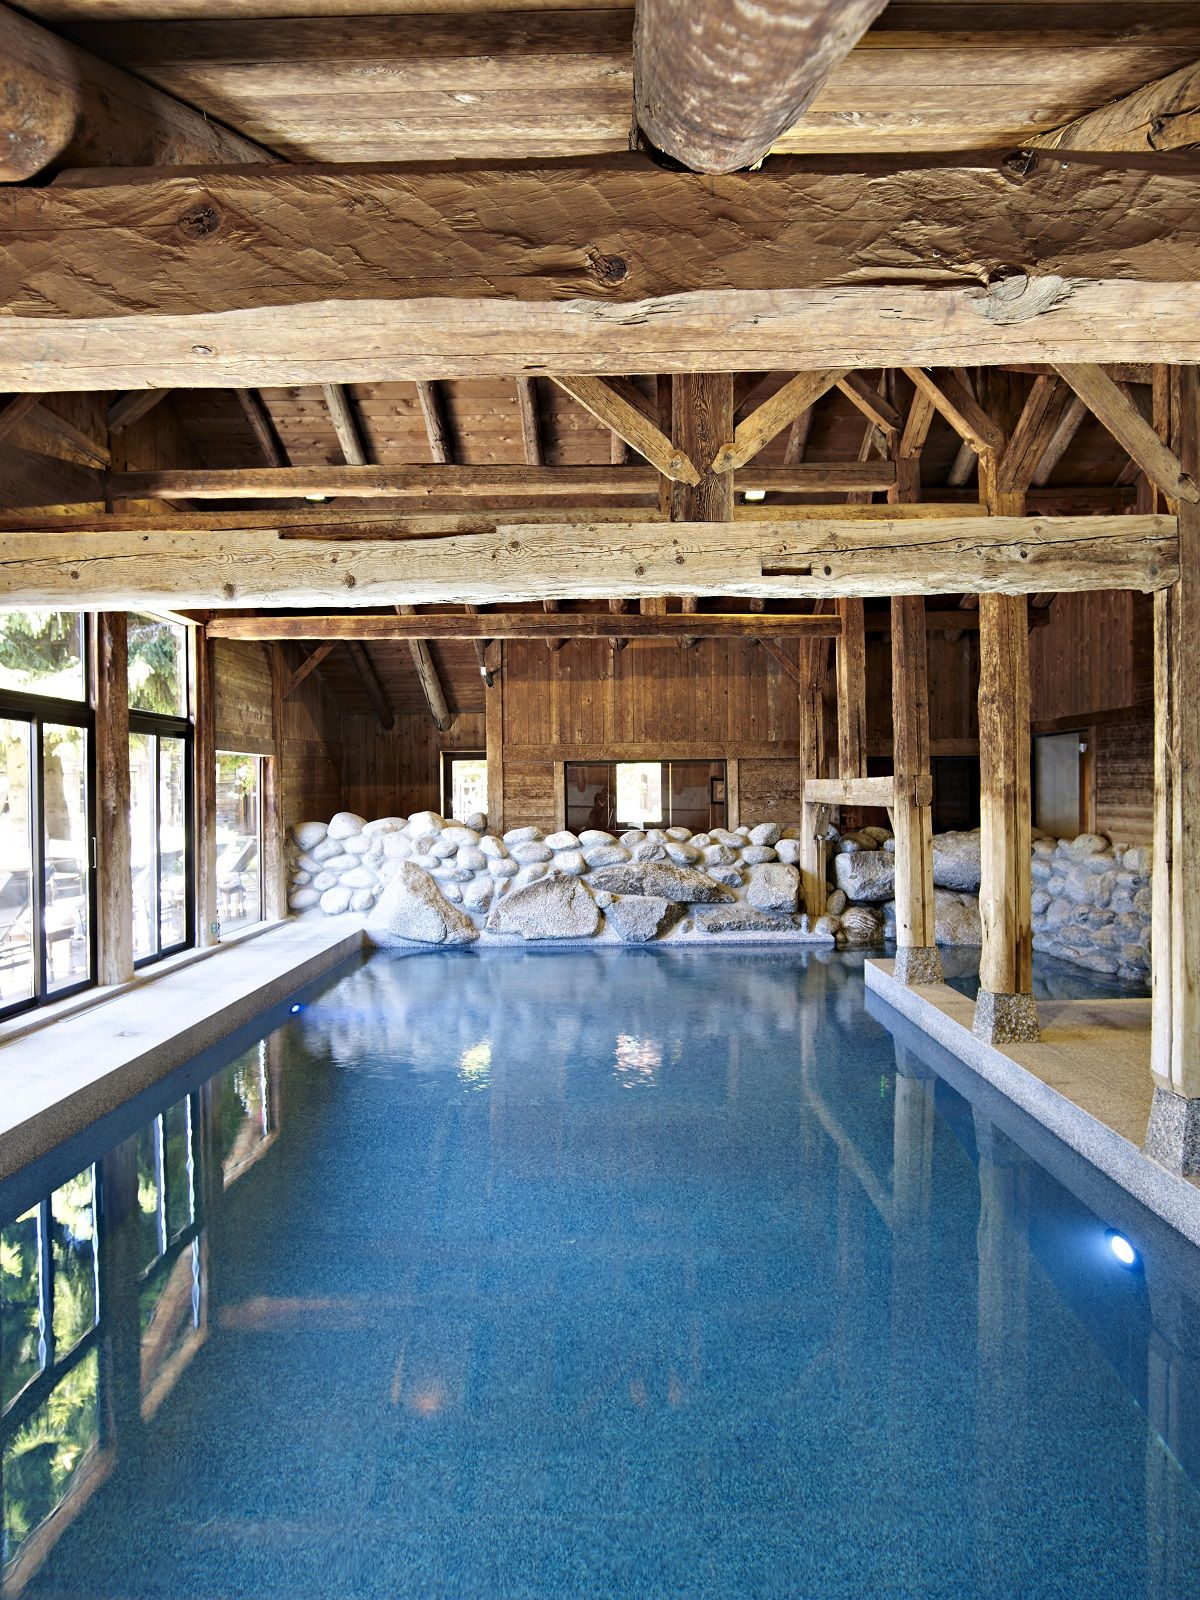 Les Fermes De Marie A Luxurious Family Oriented Indoor Swimming Pools Luxury Swimming Pools Indoor Pool Design